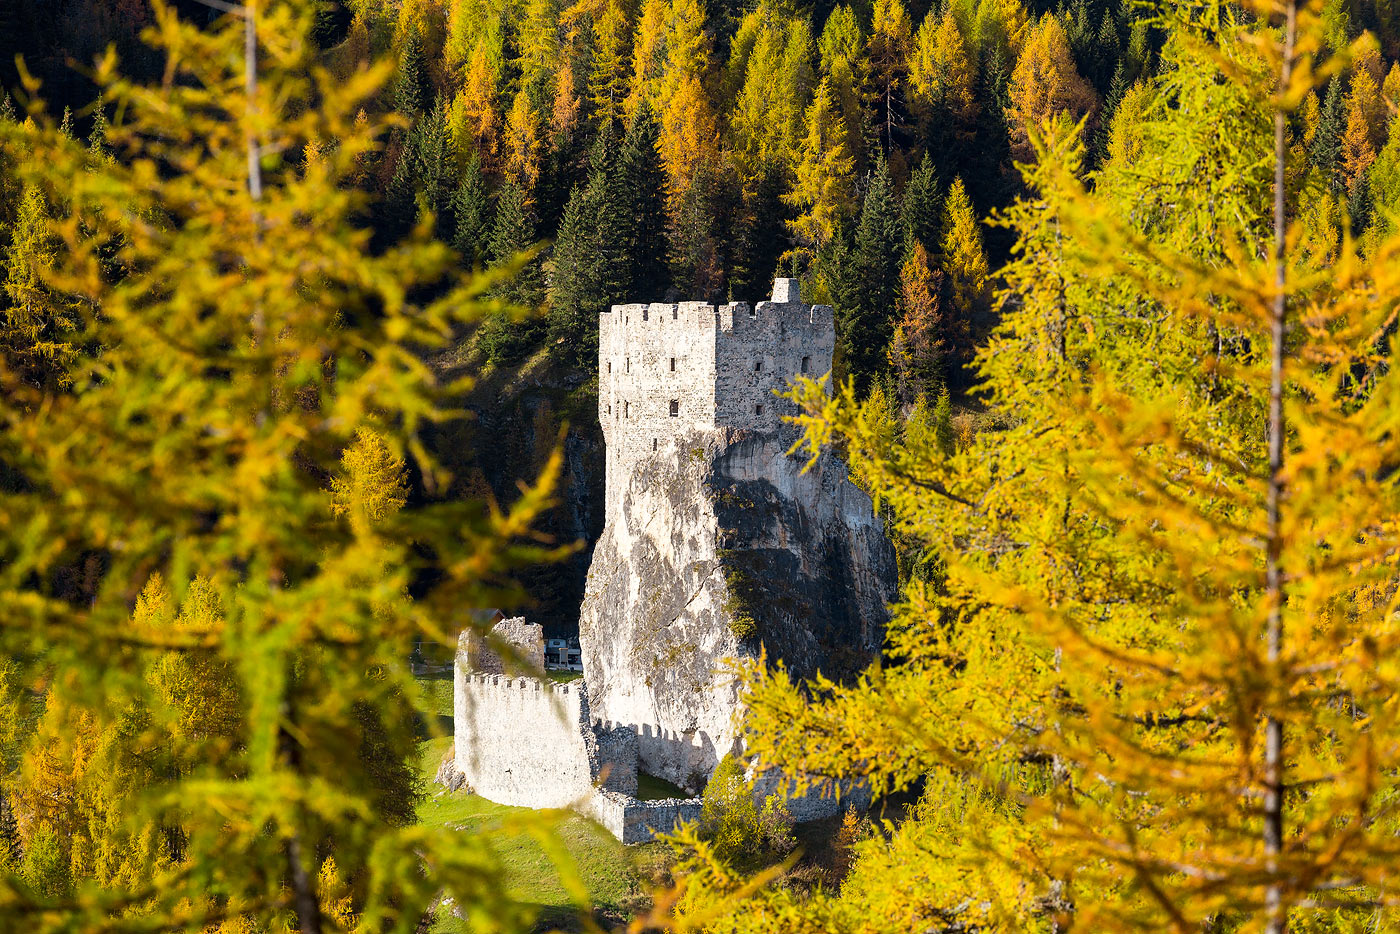 http://www.castellodiandraz.it/media/com_twojtoolbox/castello-andraz-autunno-021.jpg